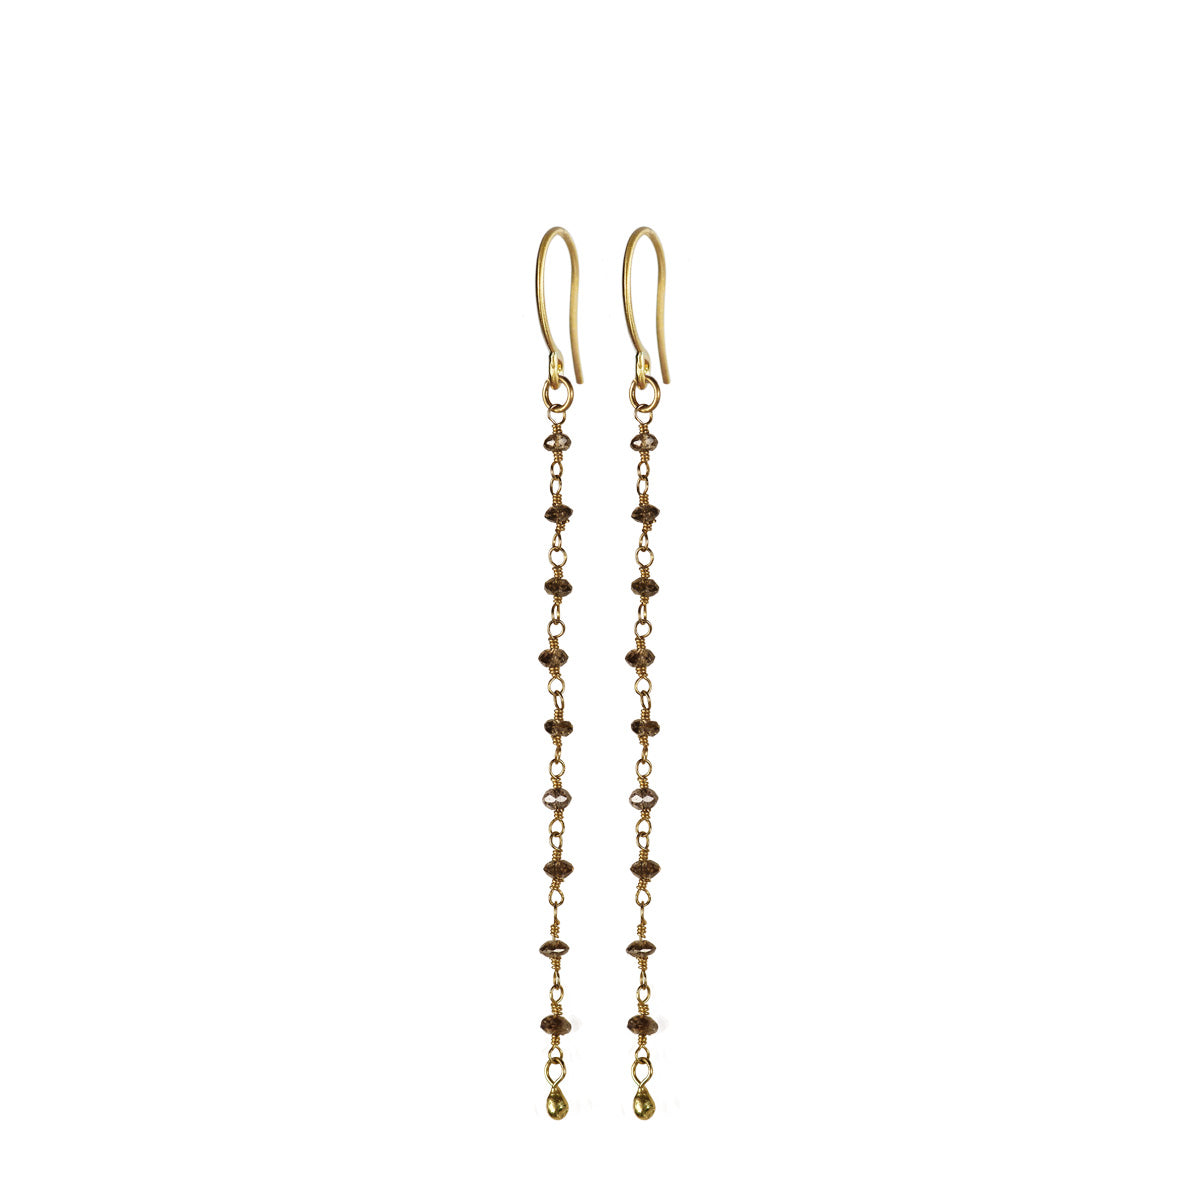 18K Gold Brown Diamond Earrings